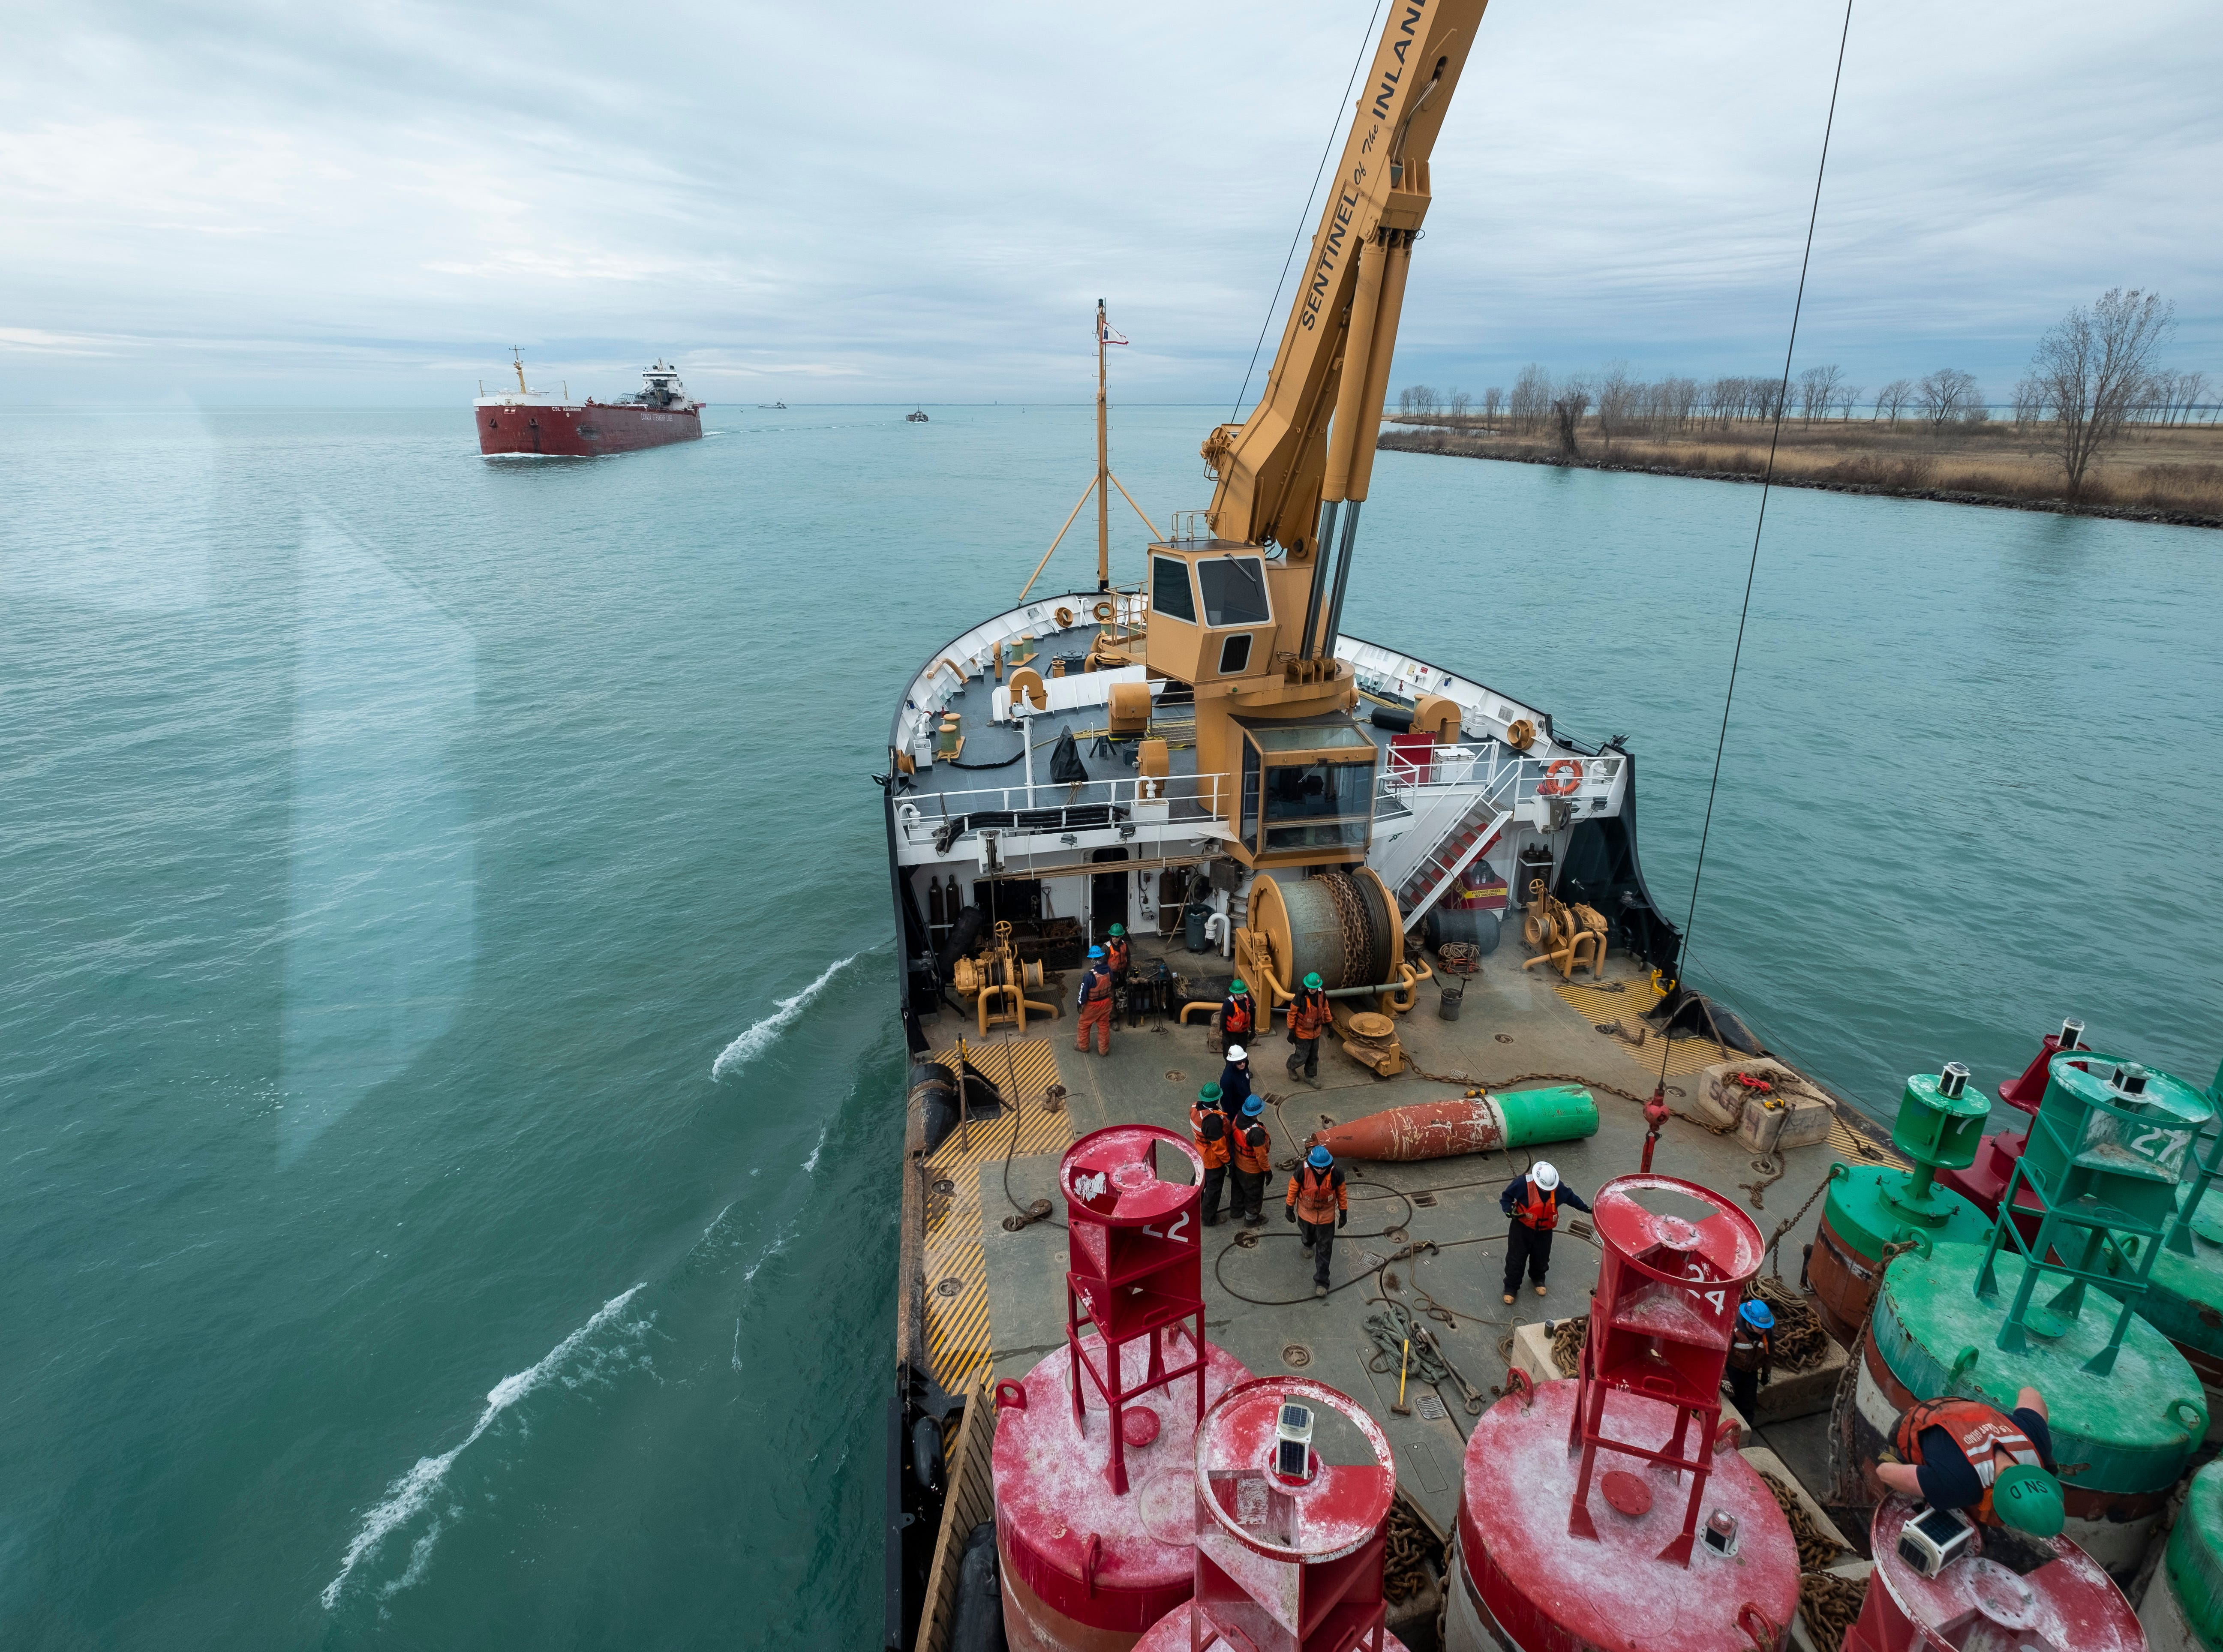 The CSL Assiniboine passes the Hollyhock's port side bow while crews work to attach a crain to a buoy on the cutter's deck Thursday, April 25, 2019 on the St. Clair River.